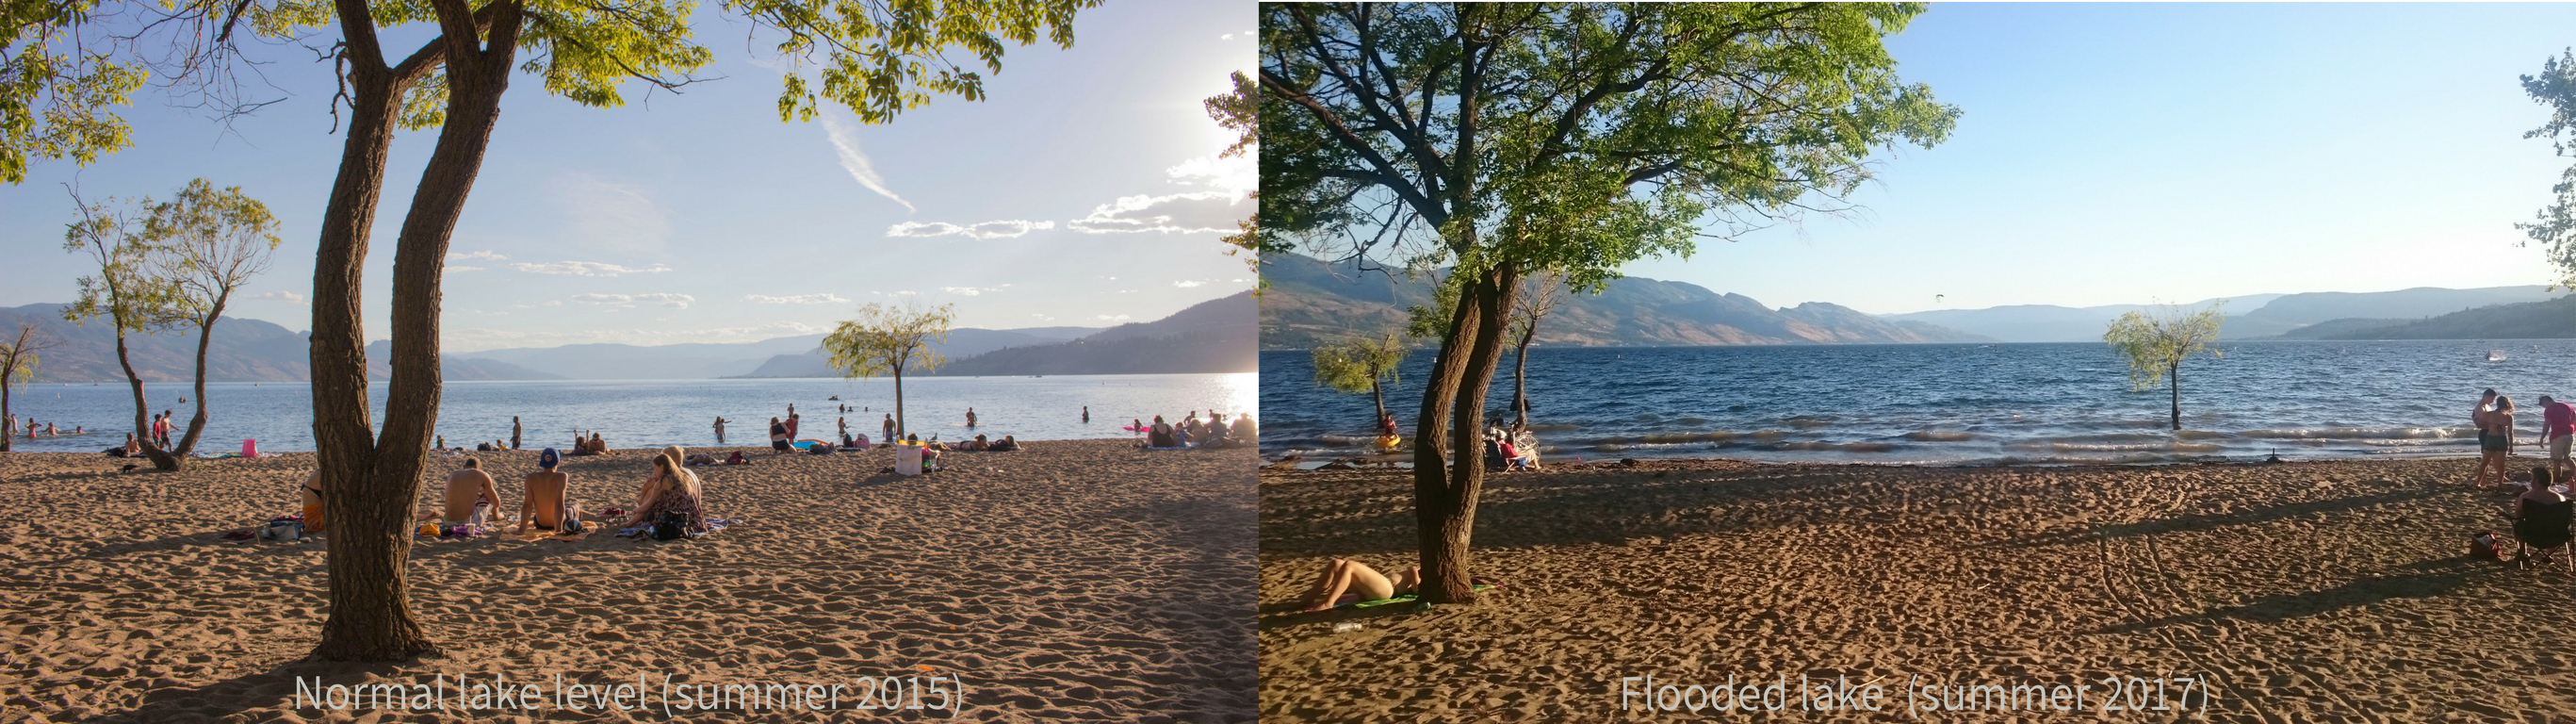 gyro_beach_before_and_after_flood.png